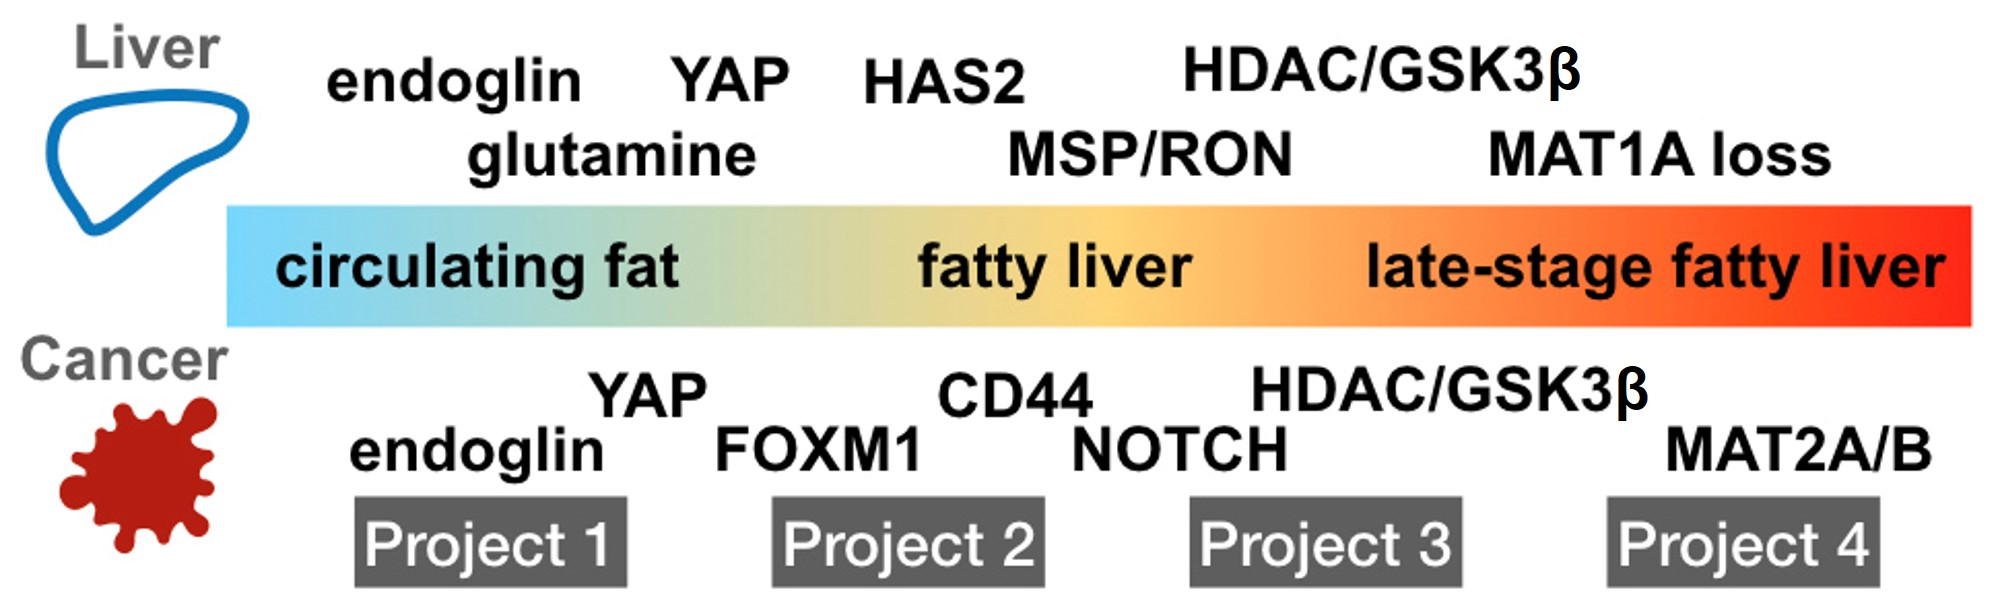 Illustration shows the four projects that examines different aspects of liver disease, but study overlapping signaling pathways common to the support or metastatic